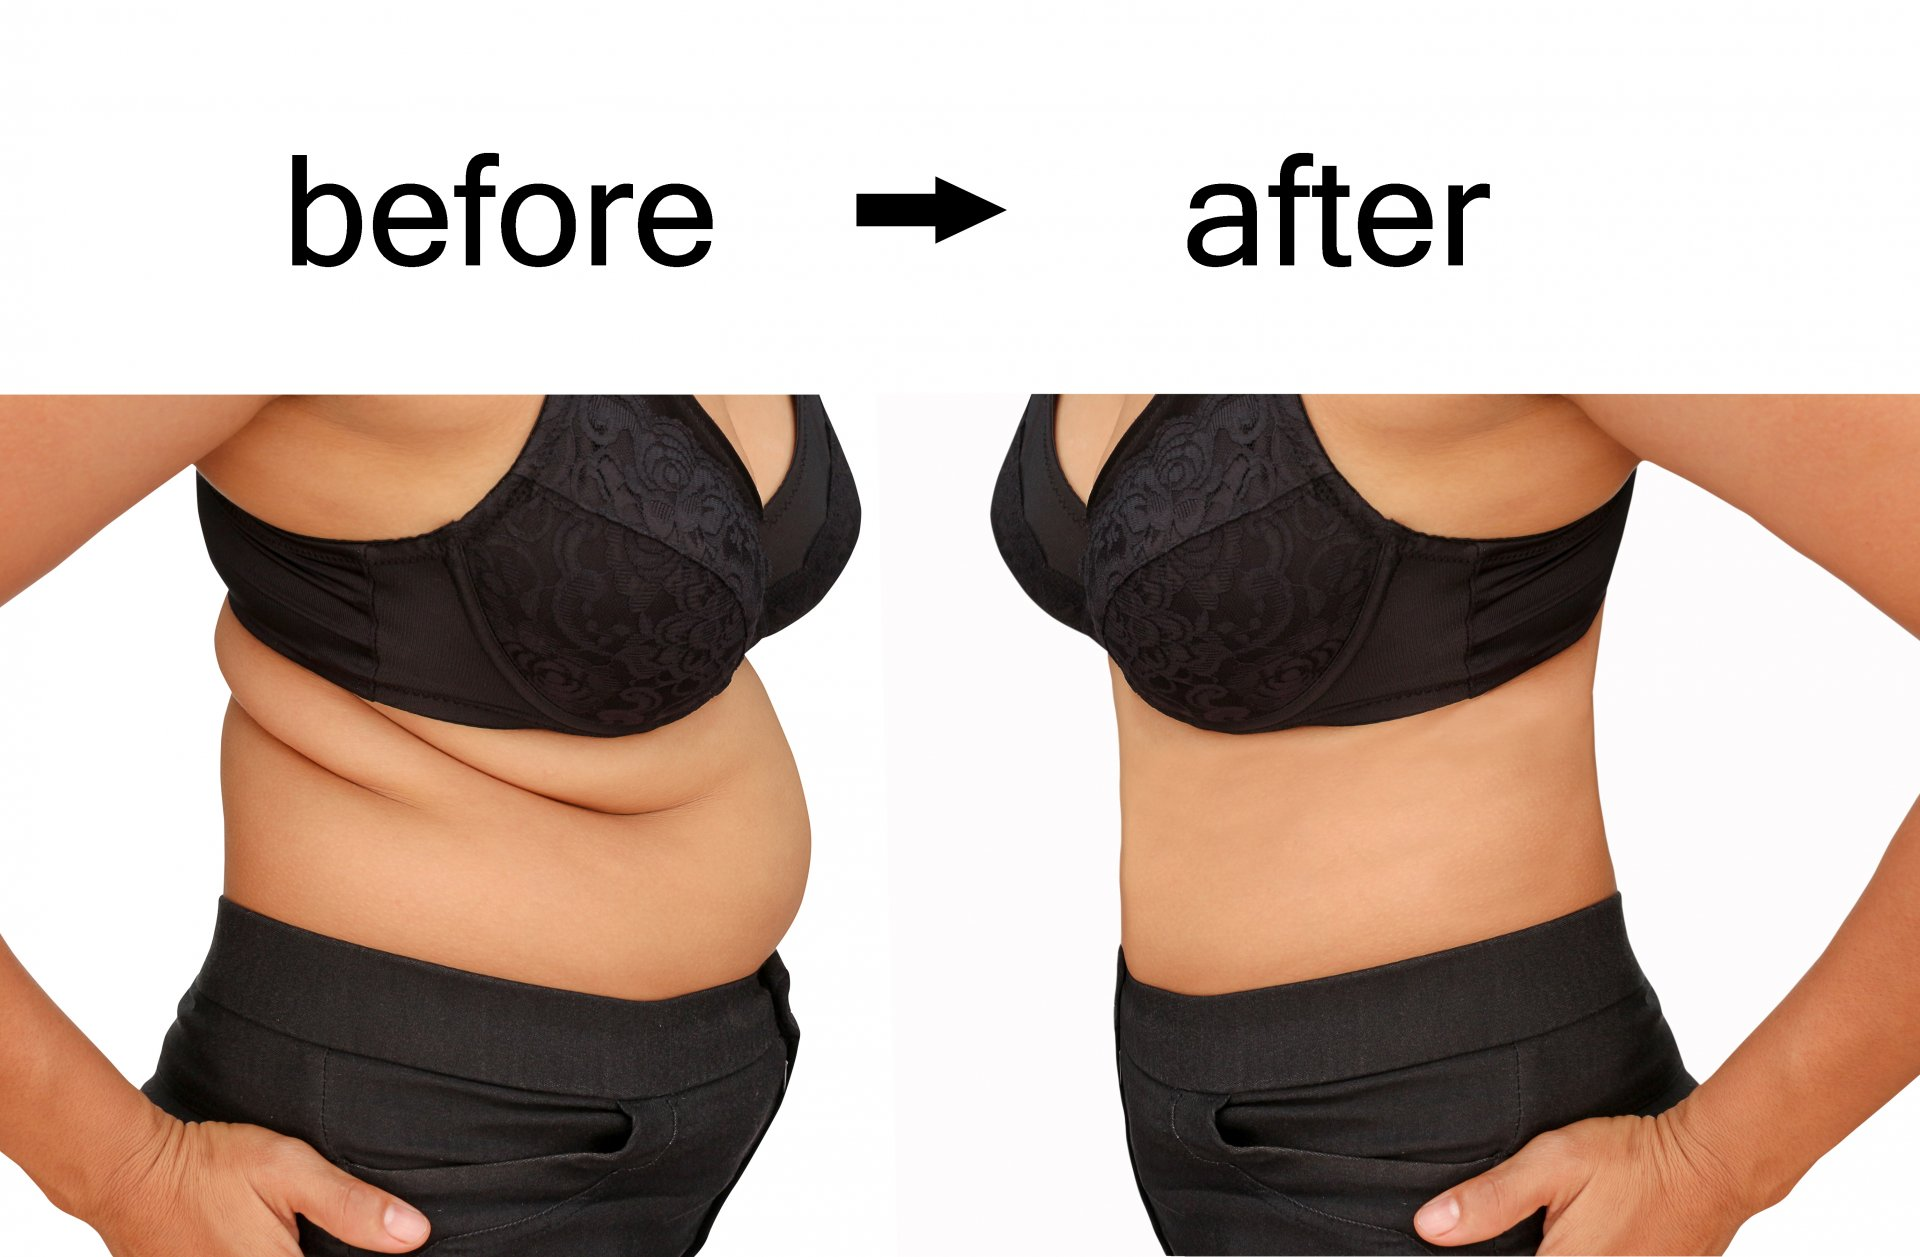 Fayetteville ar medical weight loss